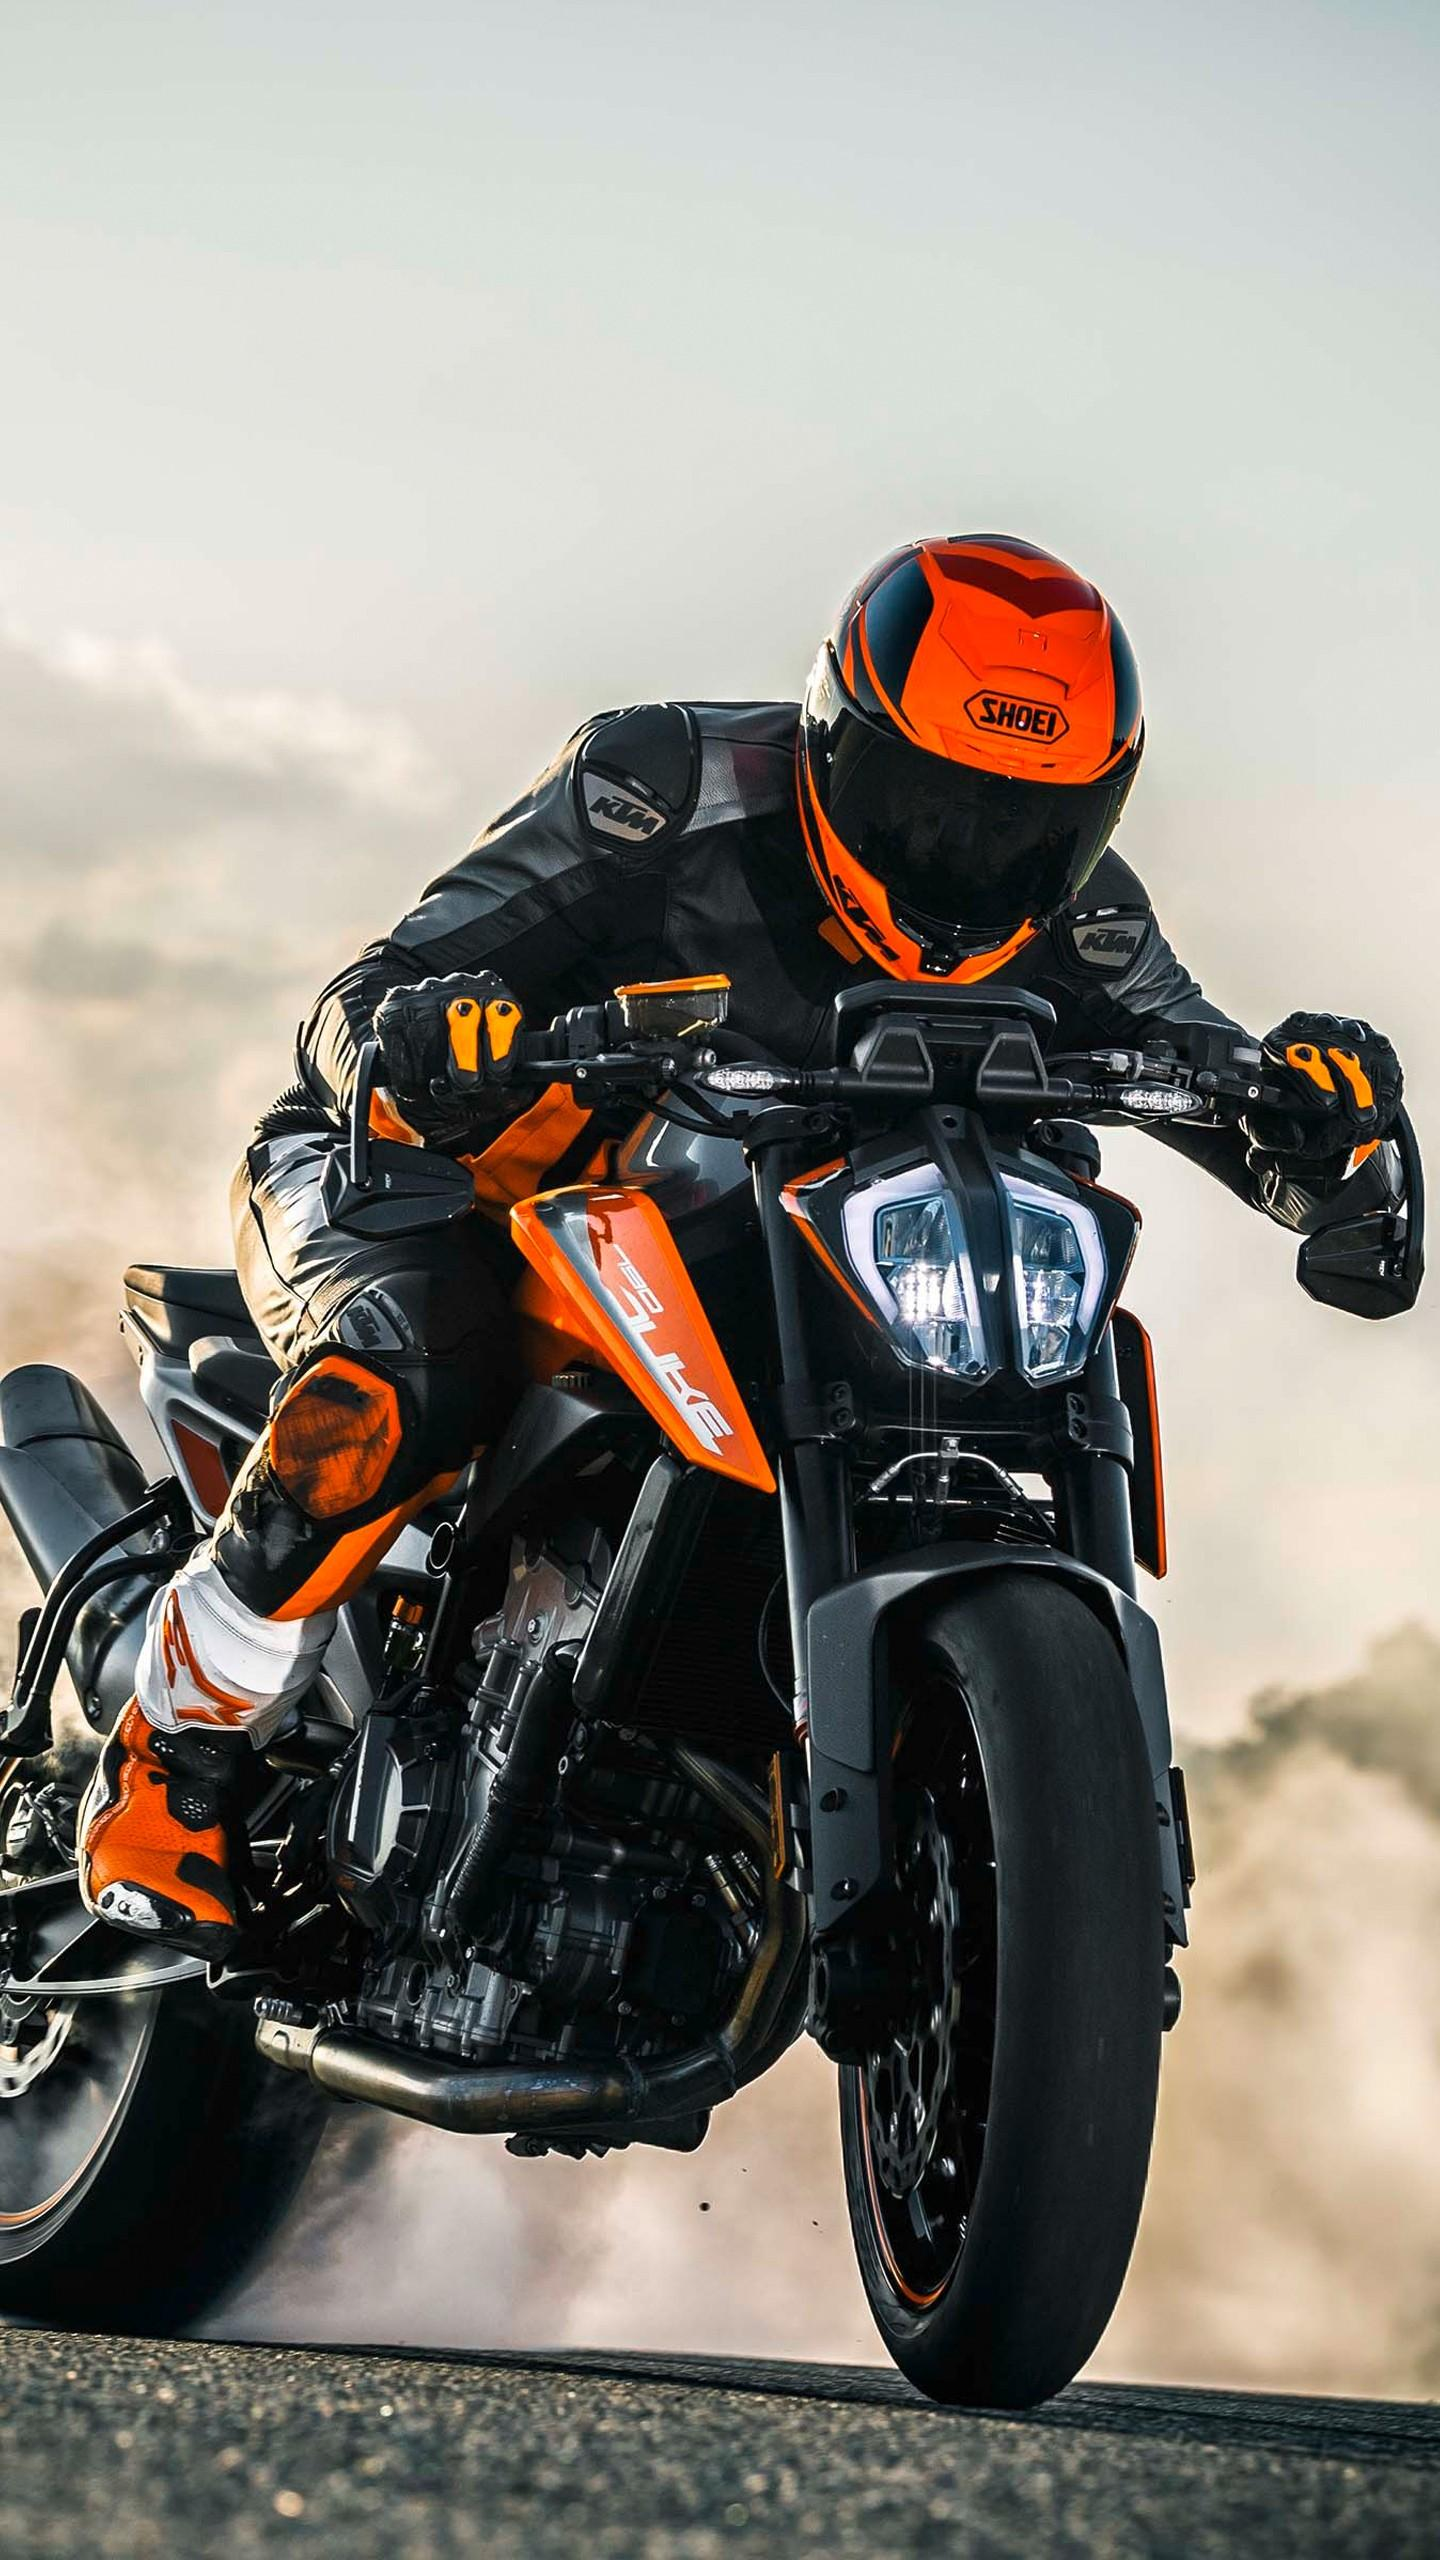 Ktm Duke 790 Wallpapers Wallpaper Cave